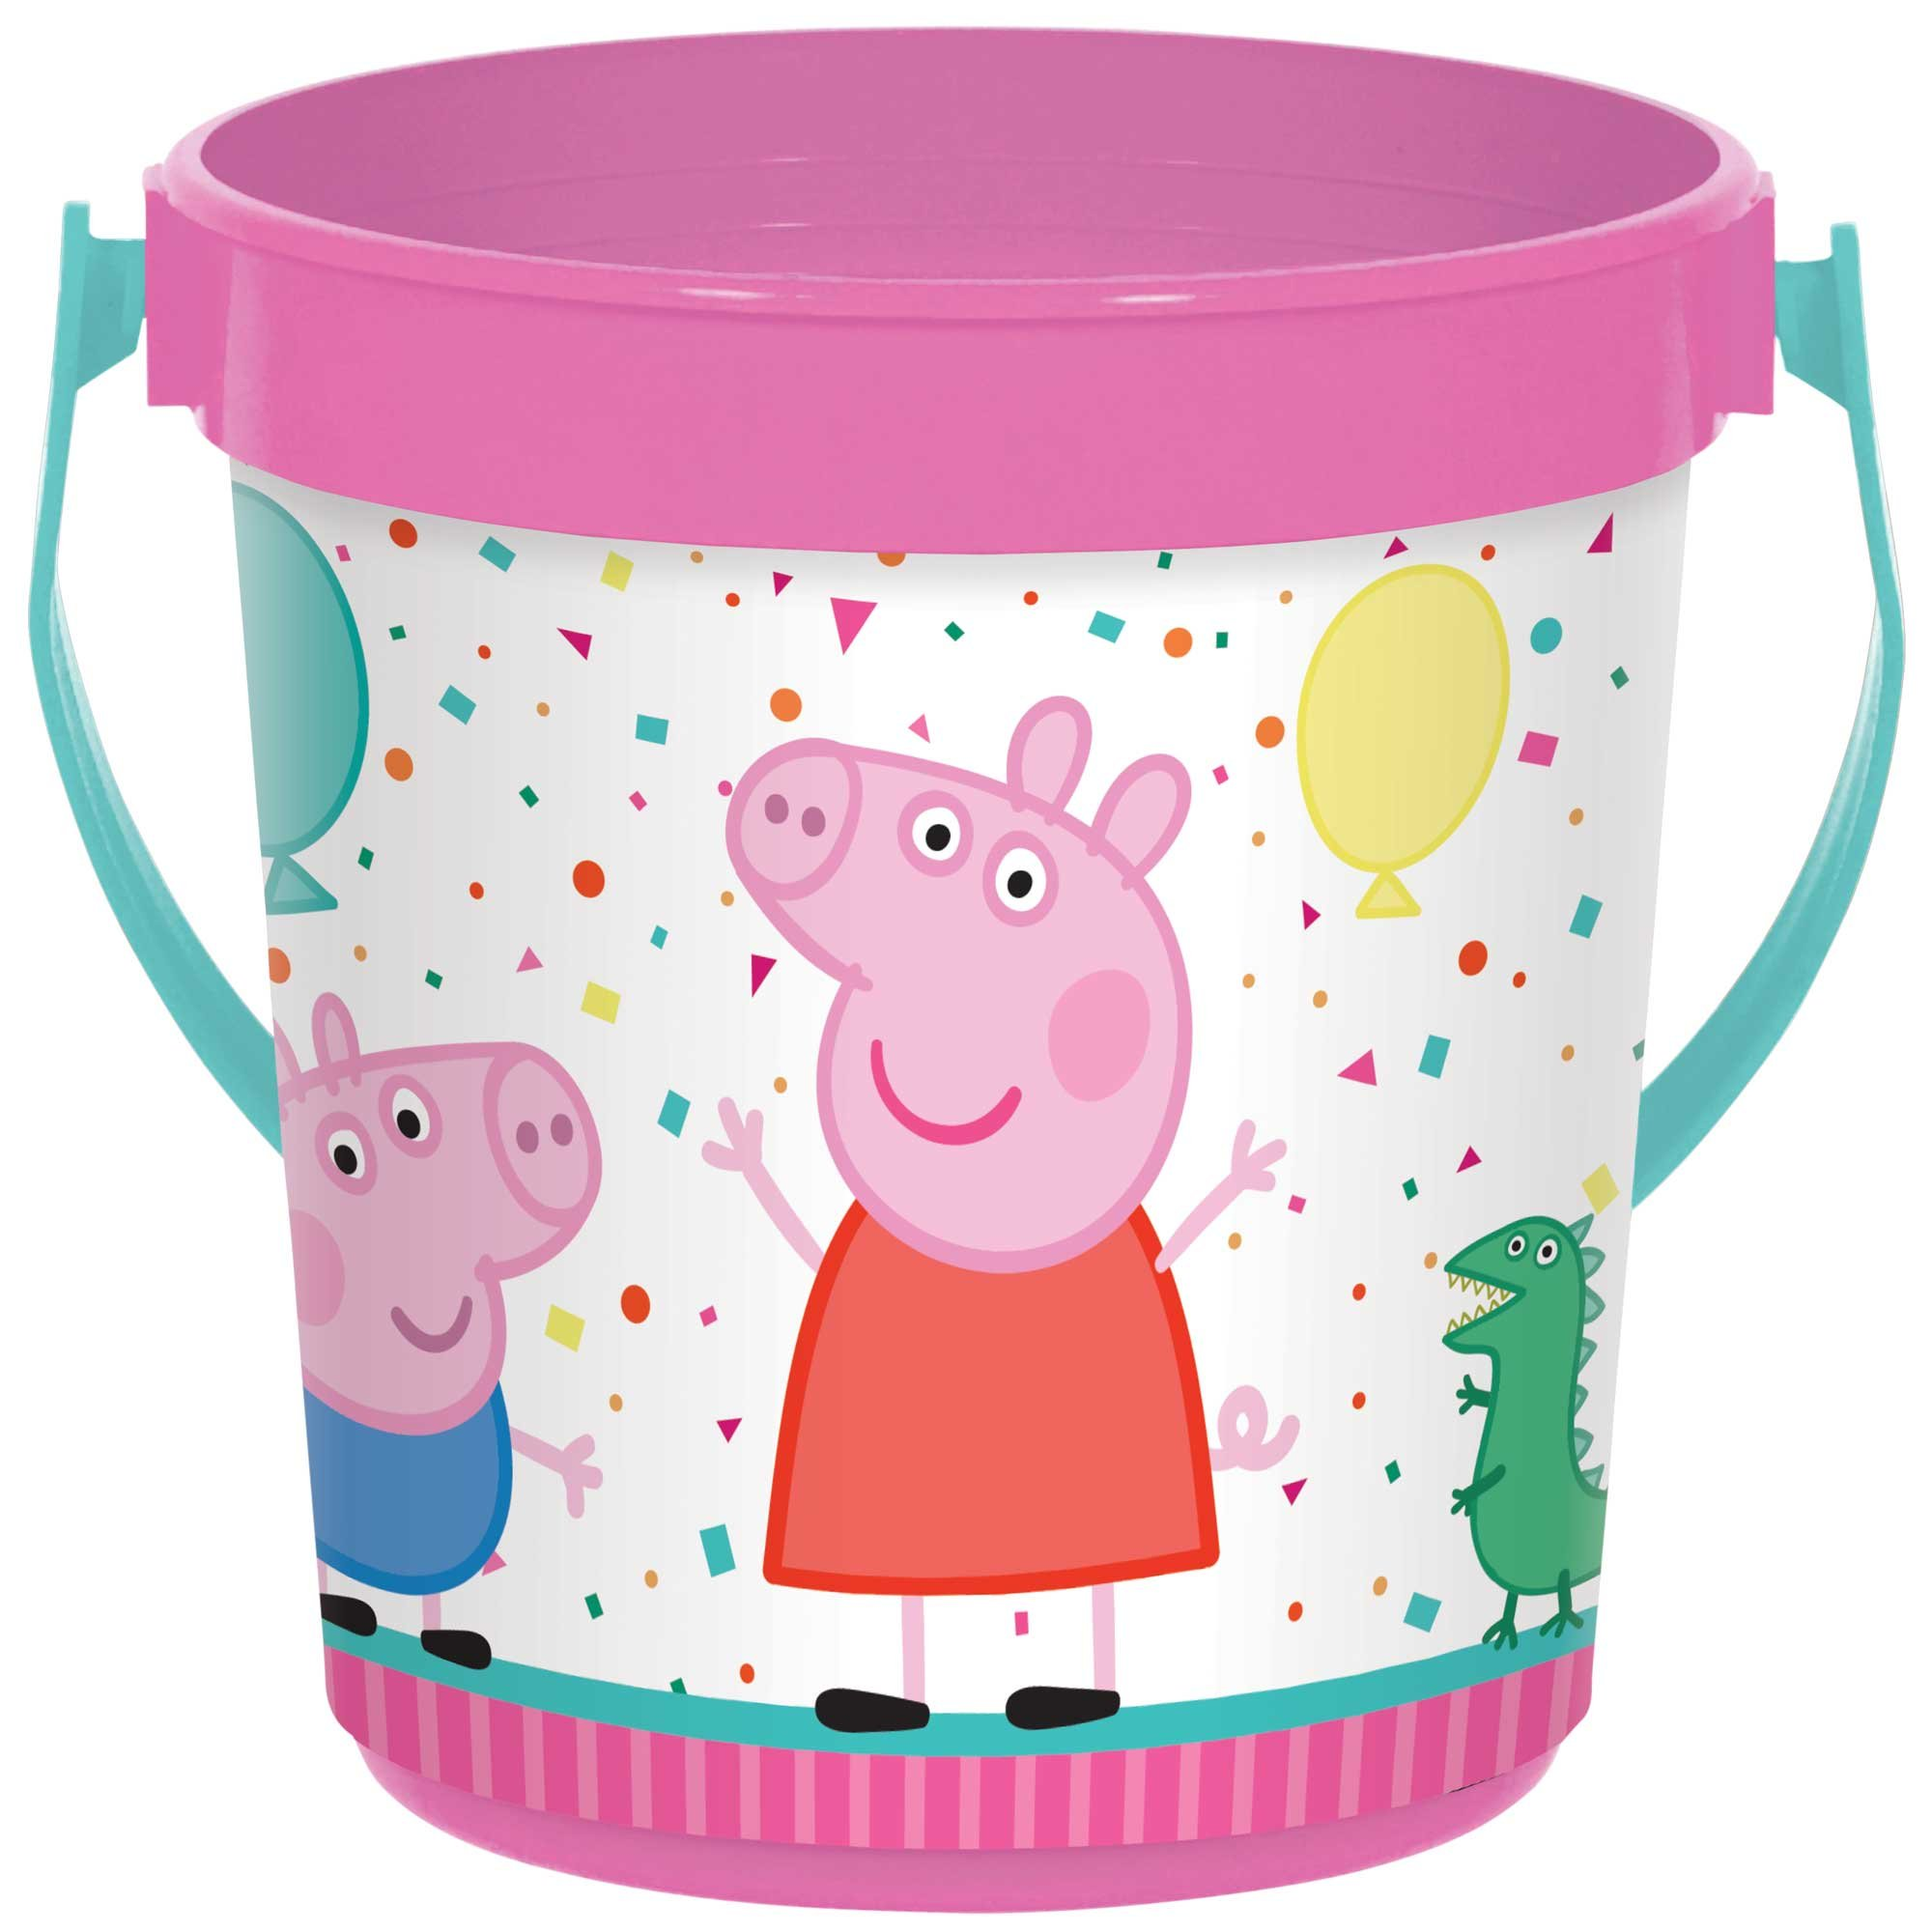 Peppa Pig Confetti Party Favor Container